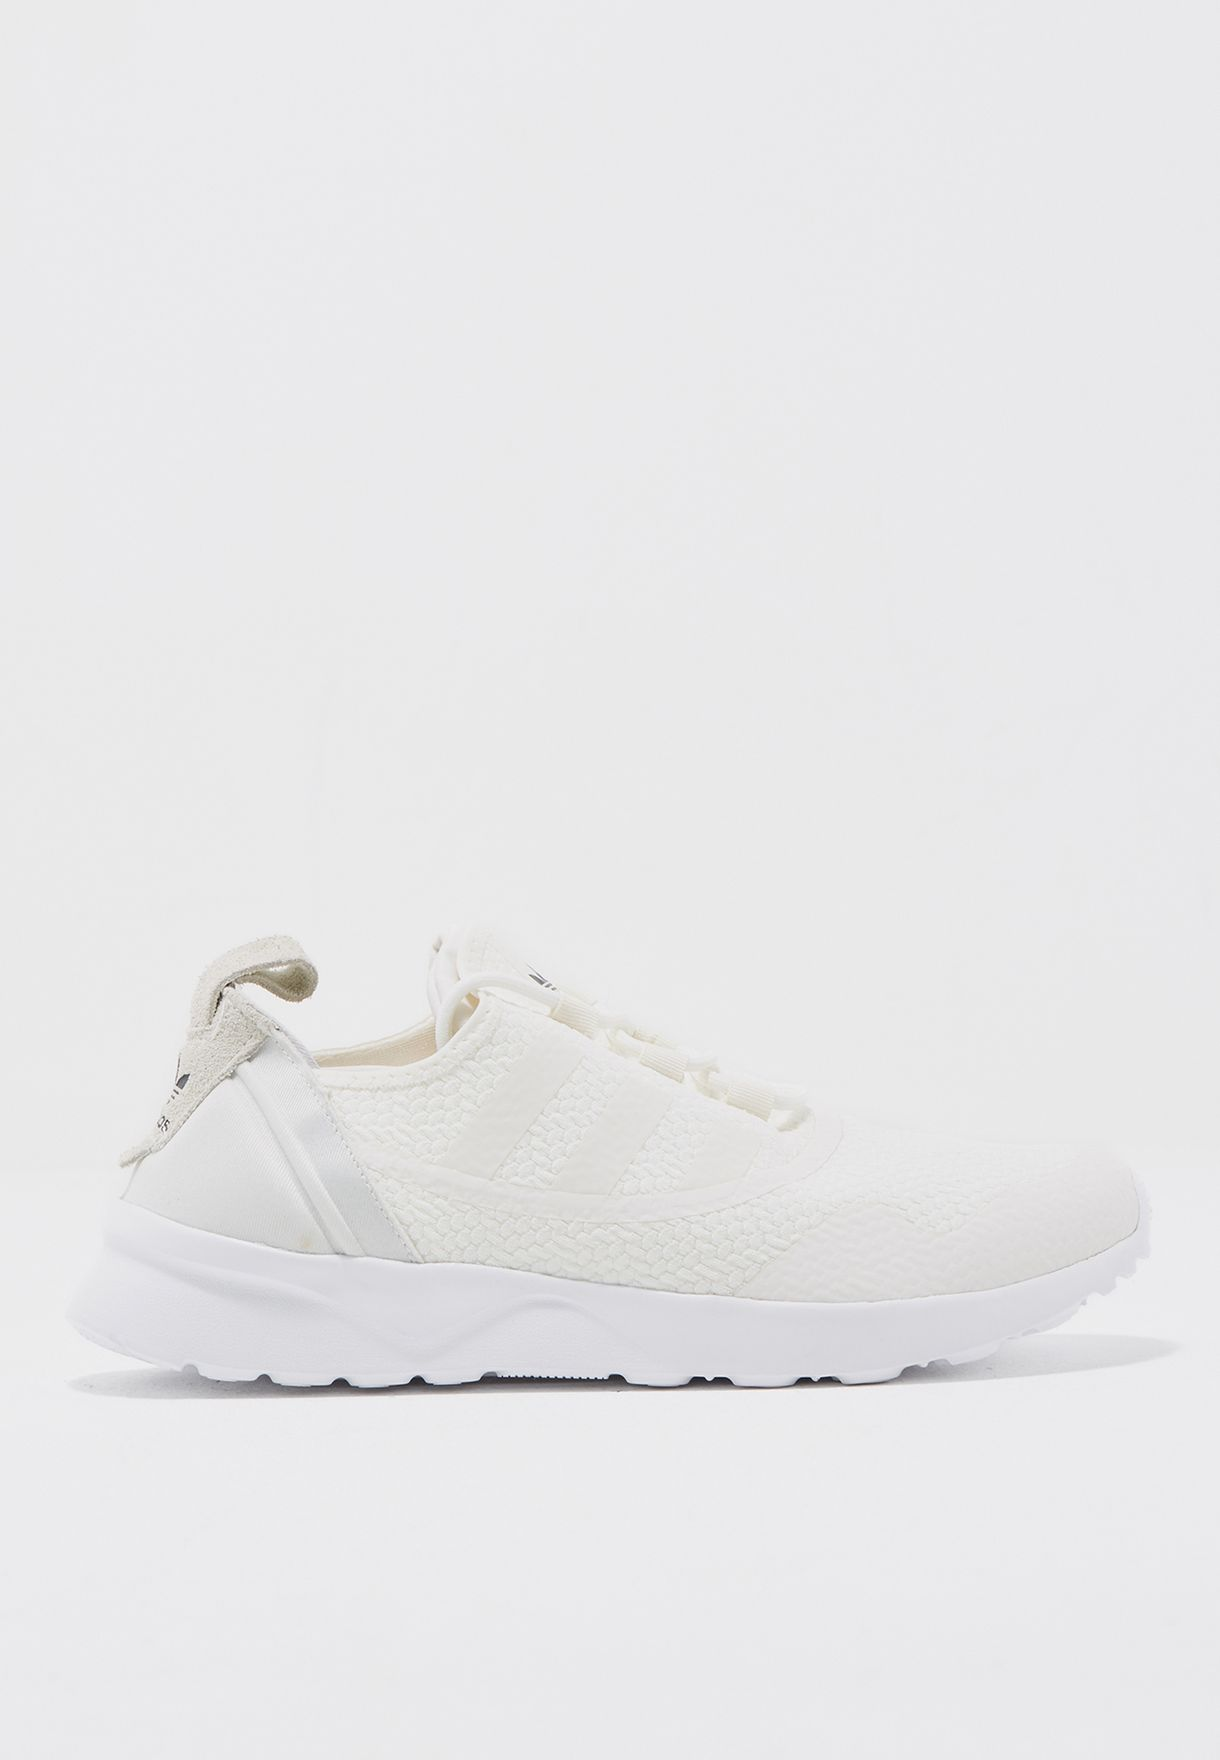 83cdcaa7f Shop adidas Originals white ZX Flux ADV Virtue CG4092 for Women in ...